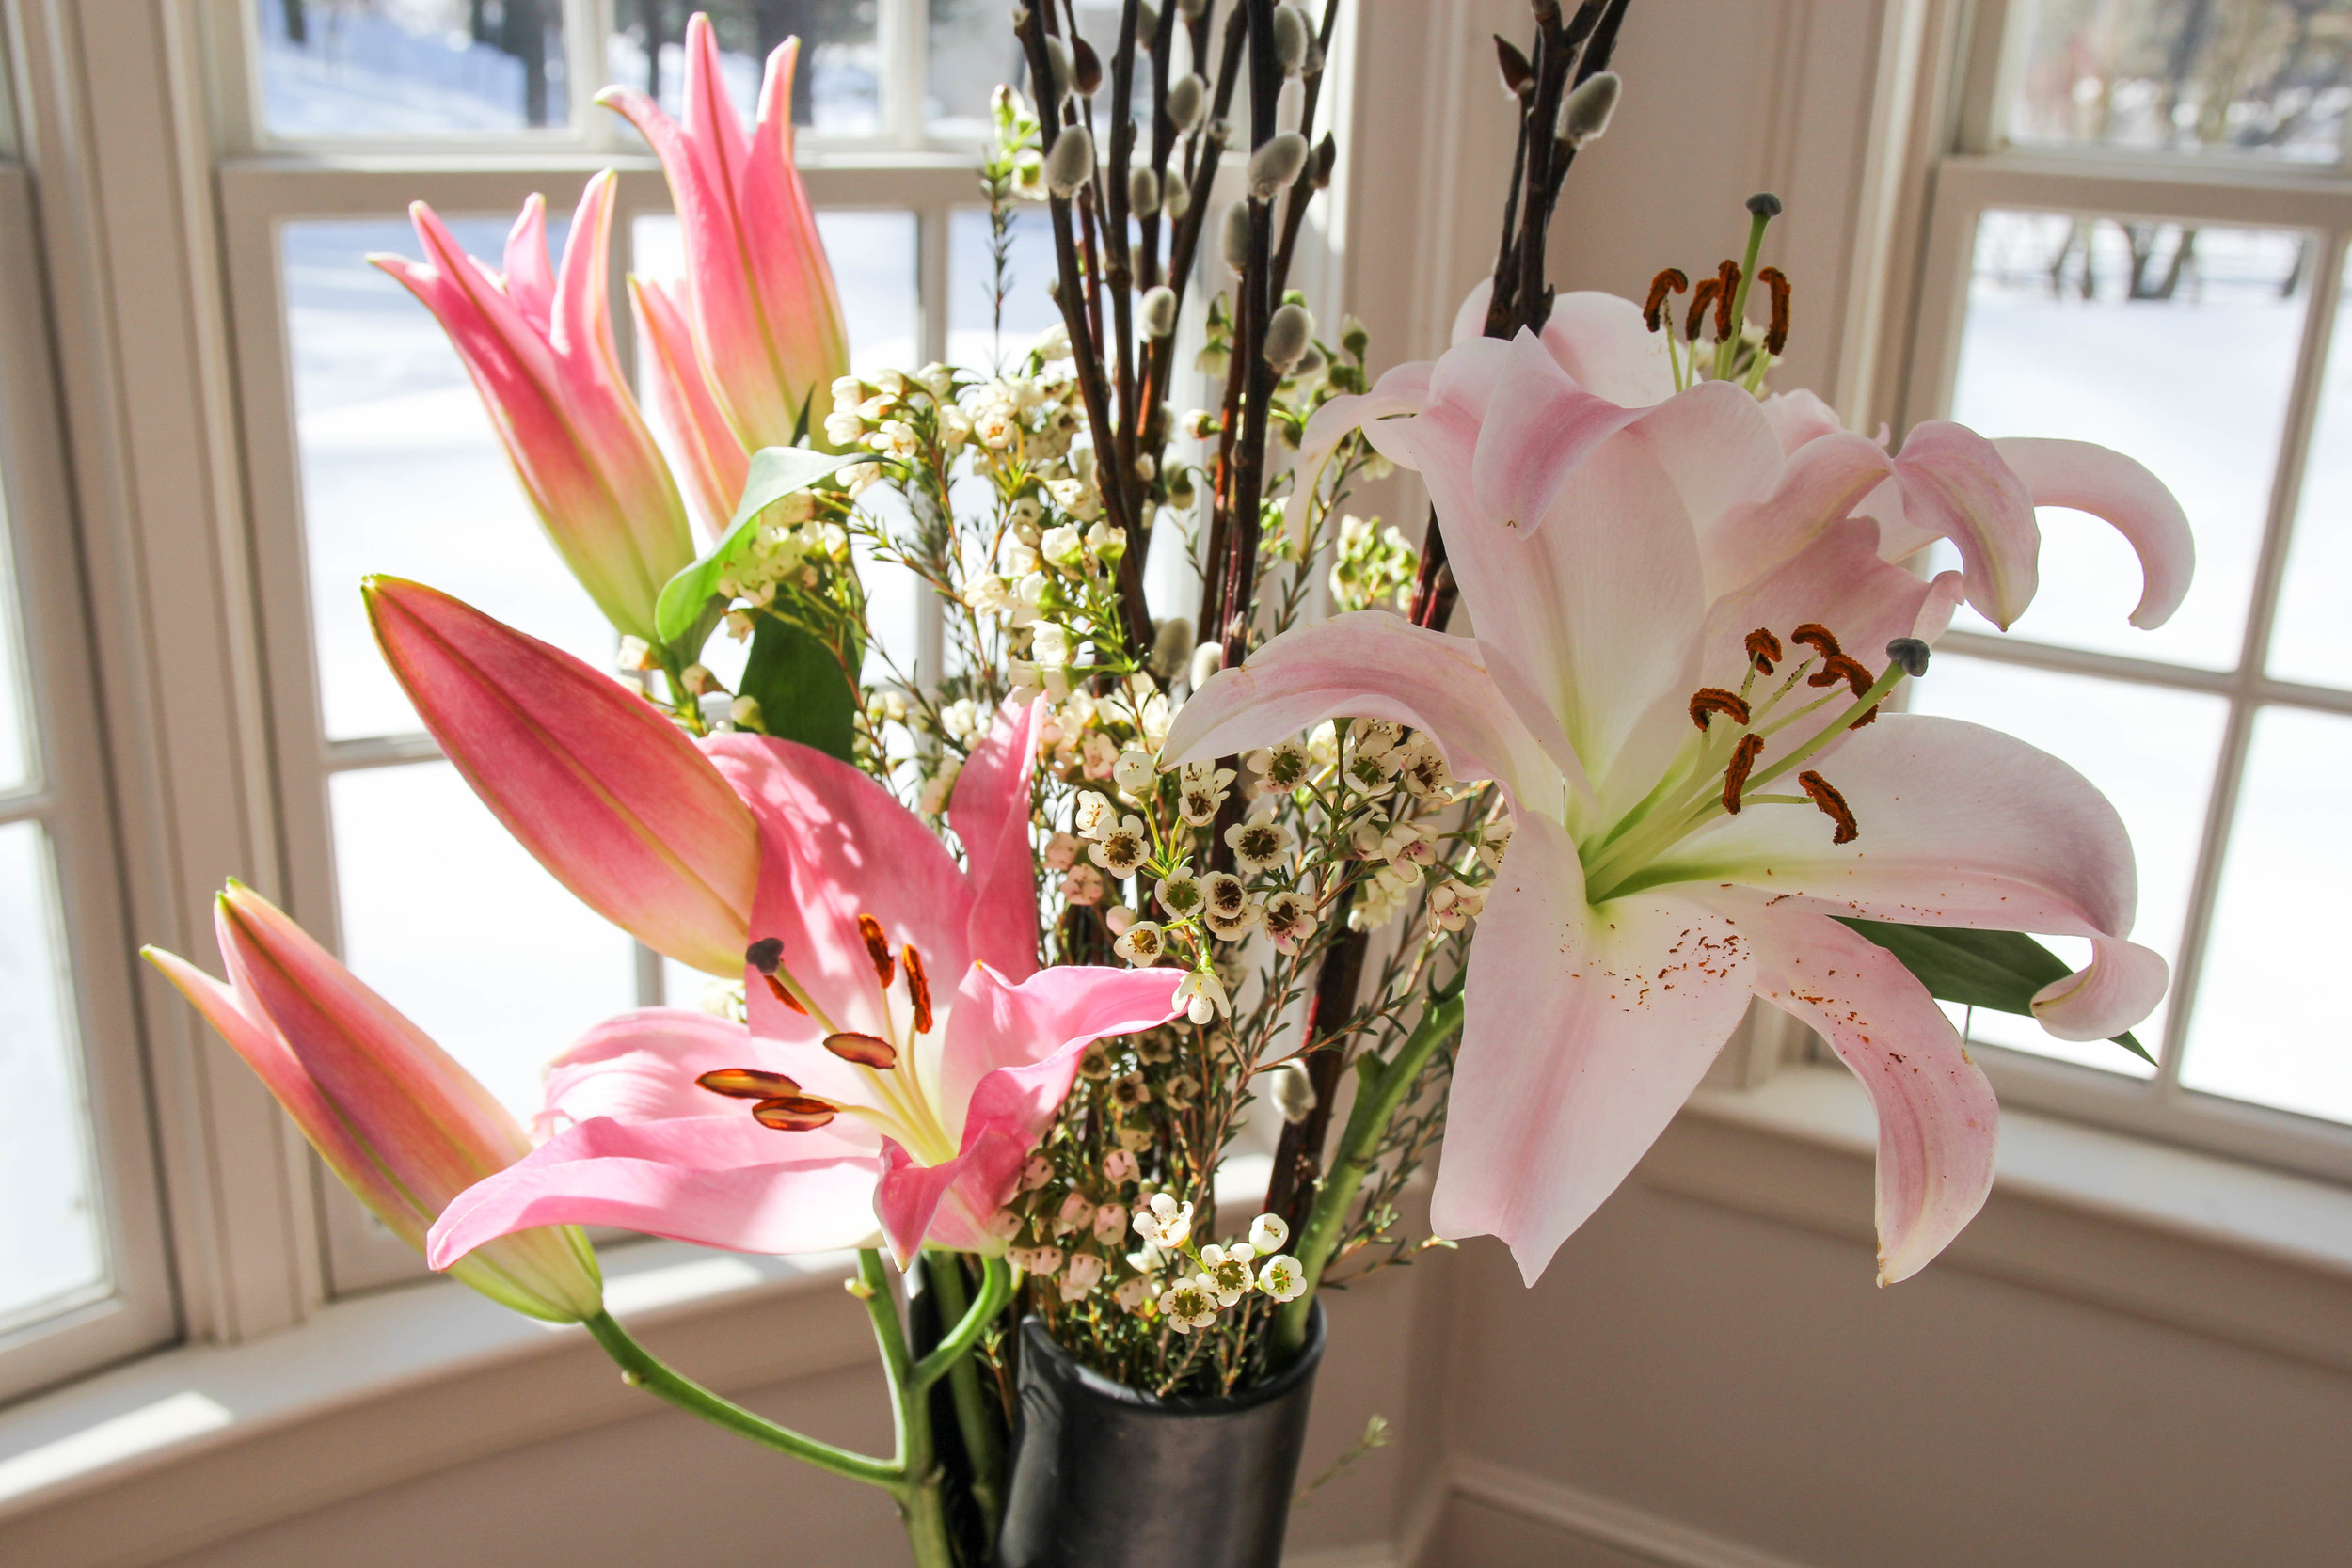 {Beautiful arrangement at home...Spring is coming folks!}